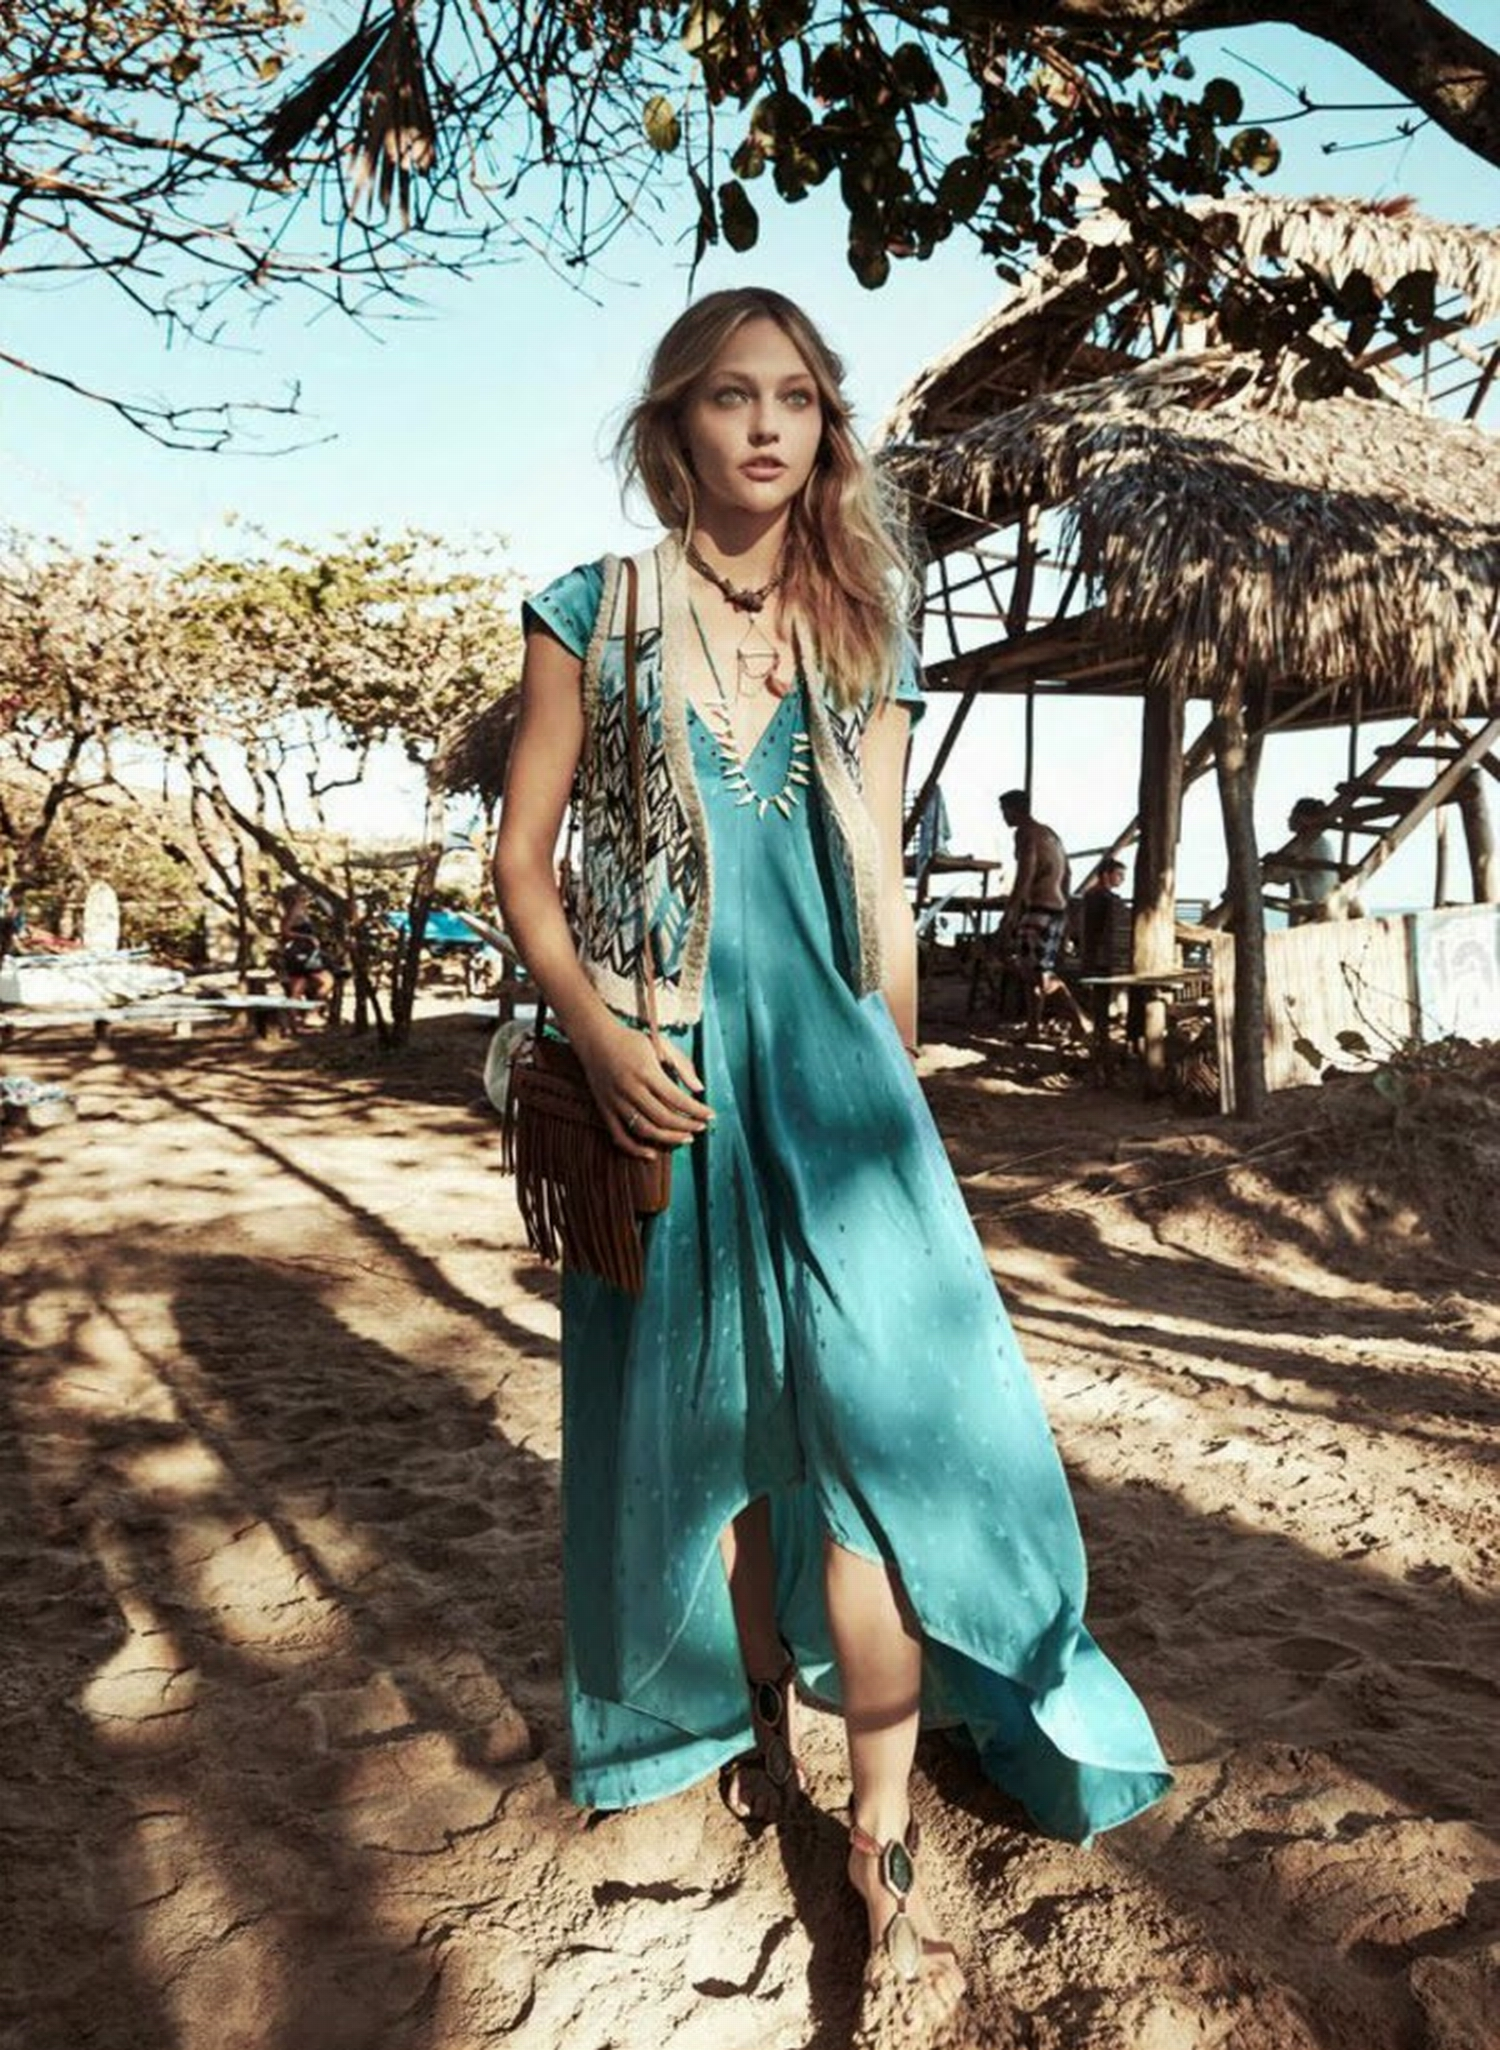 LA VAGUE GYPSET 7